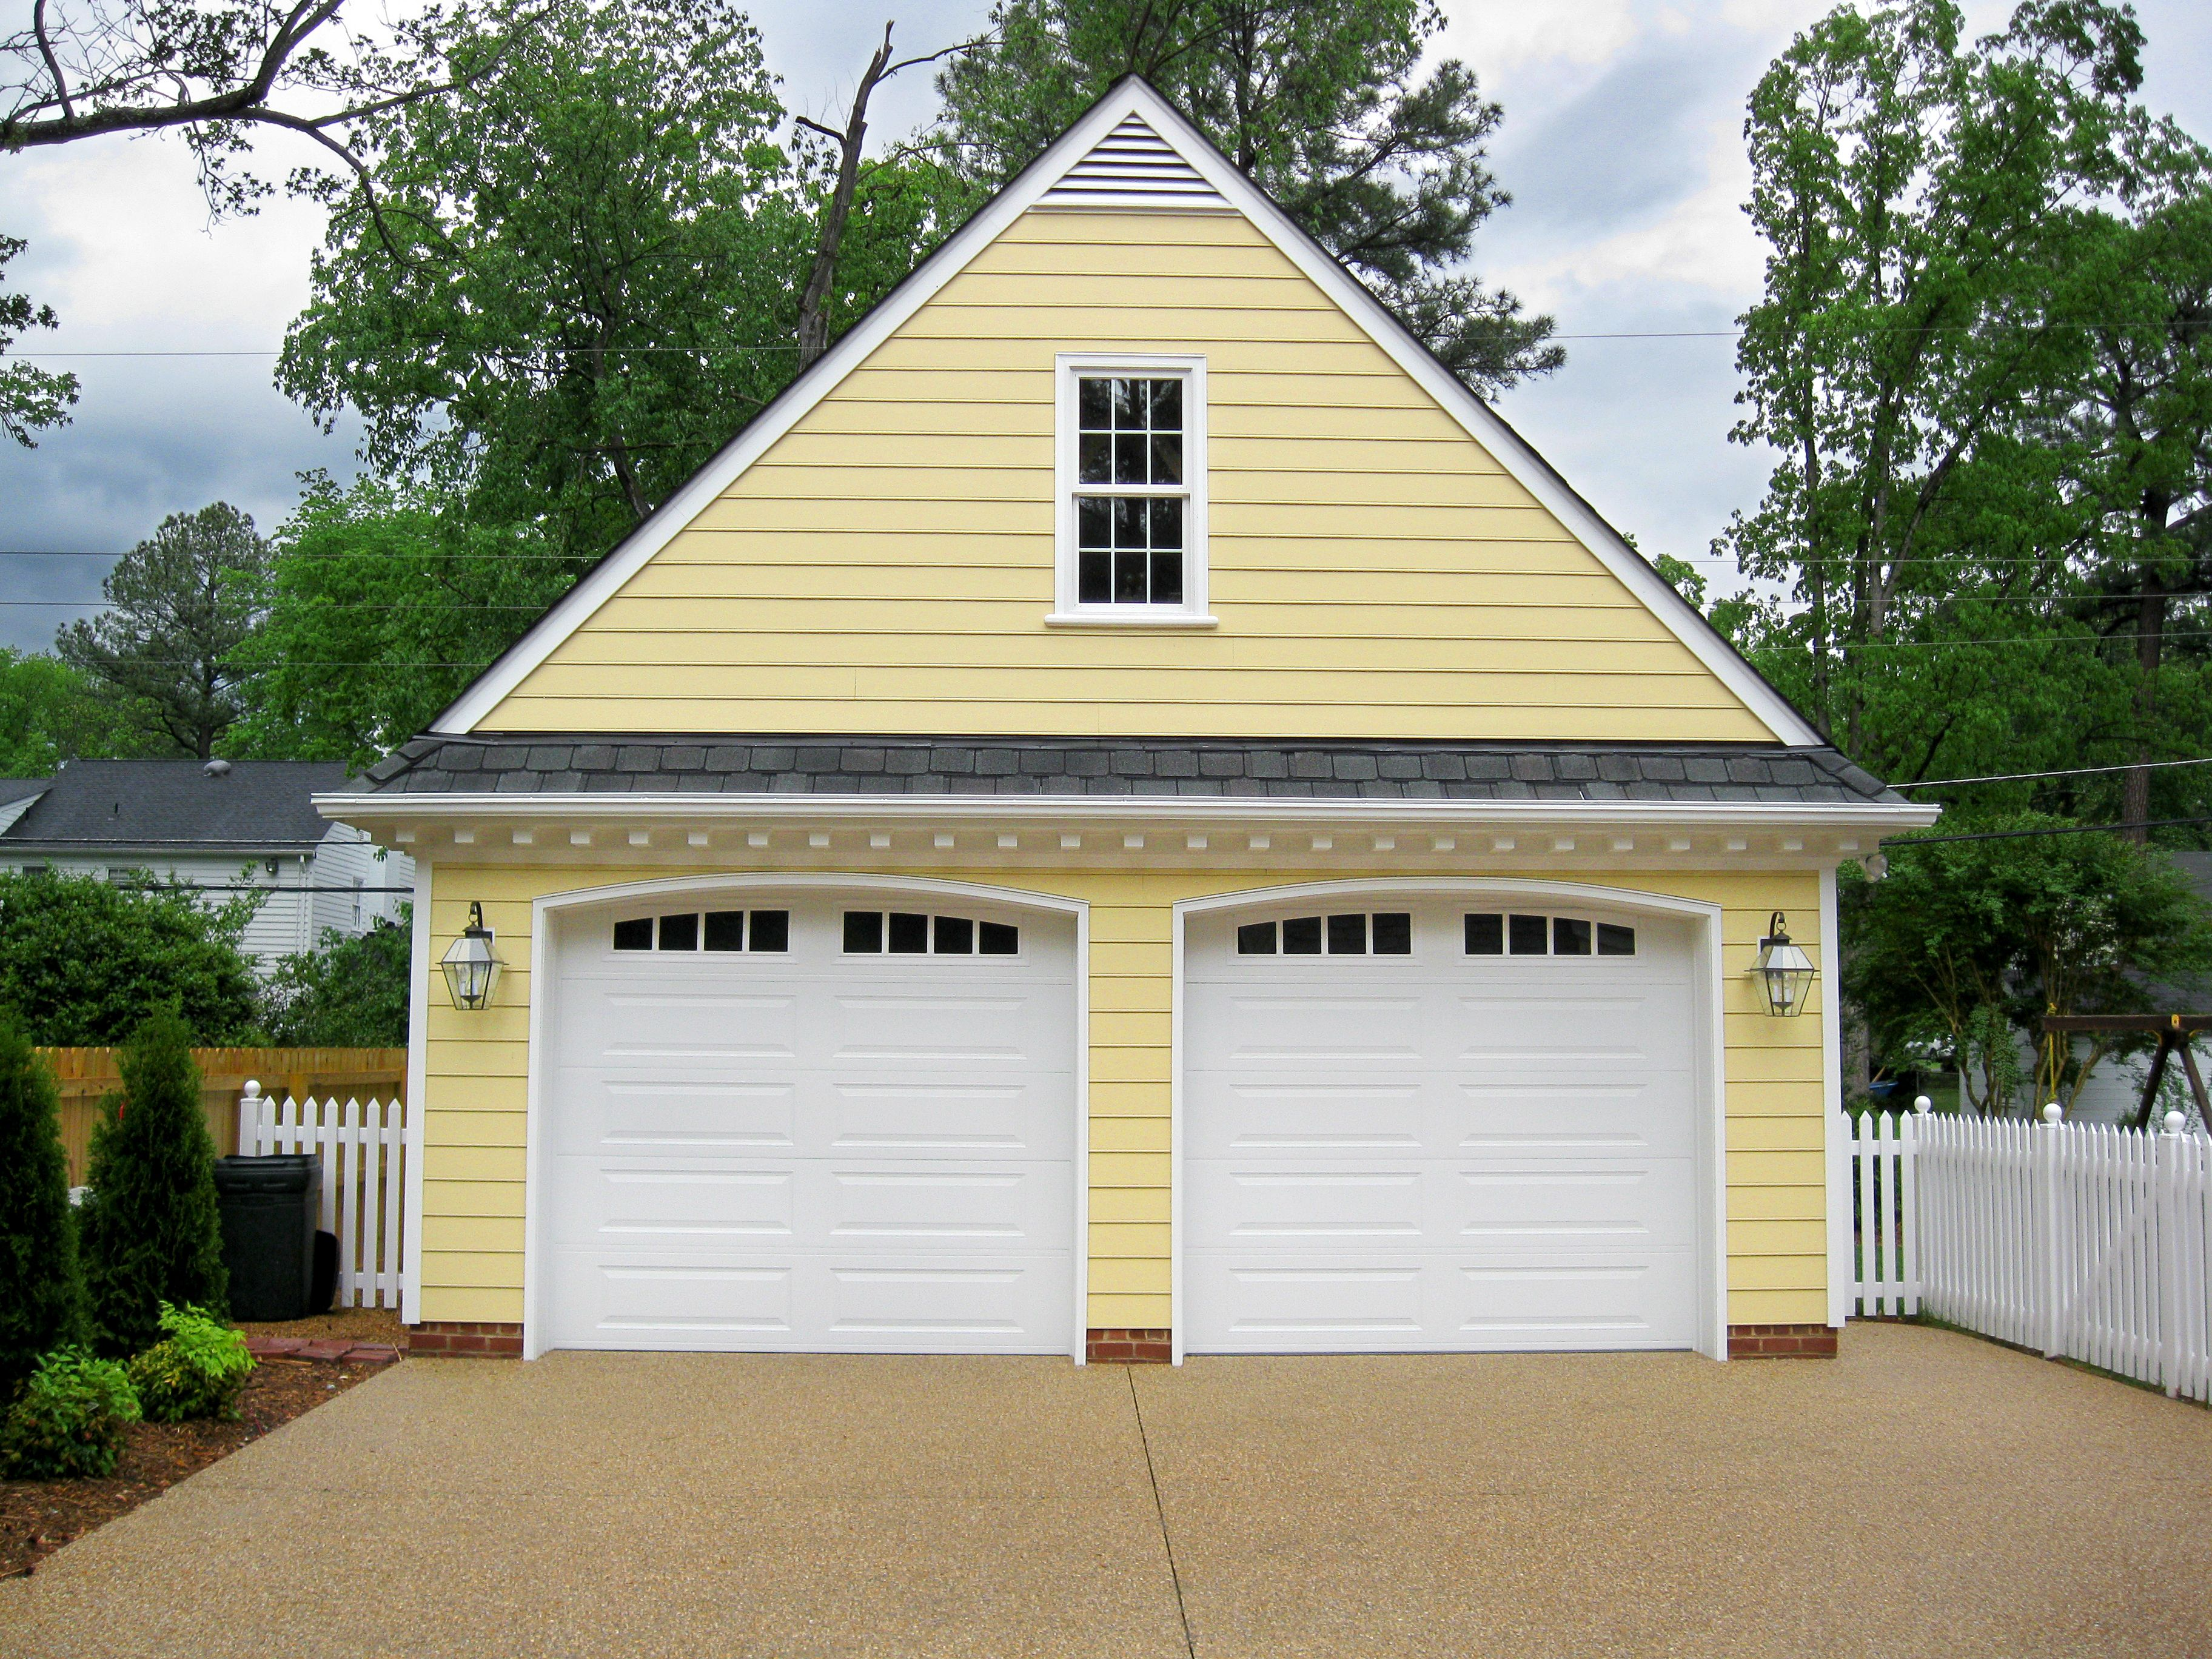 Custom Detached 2 Car Garage With Yellow Siding And White Trim By